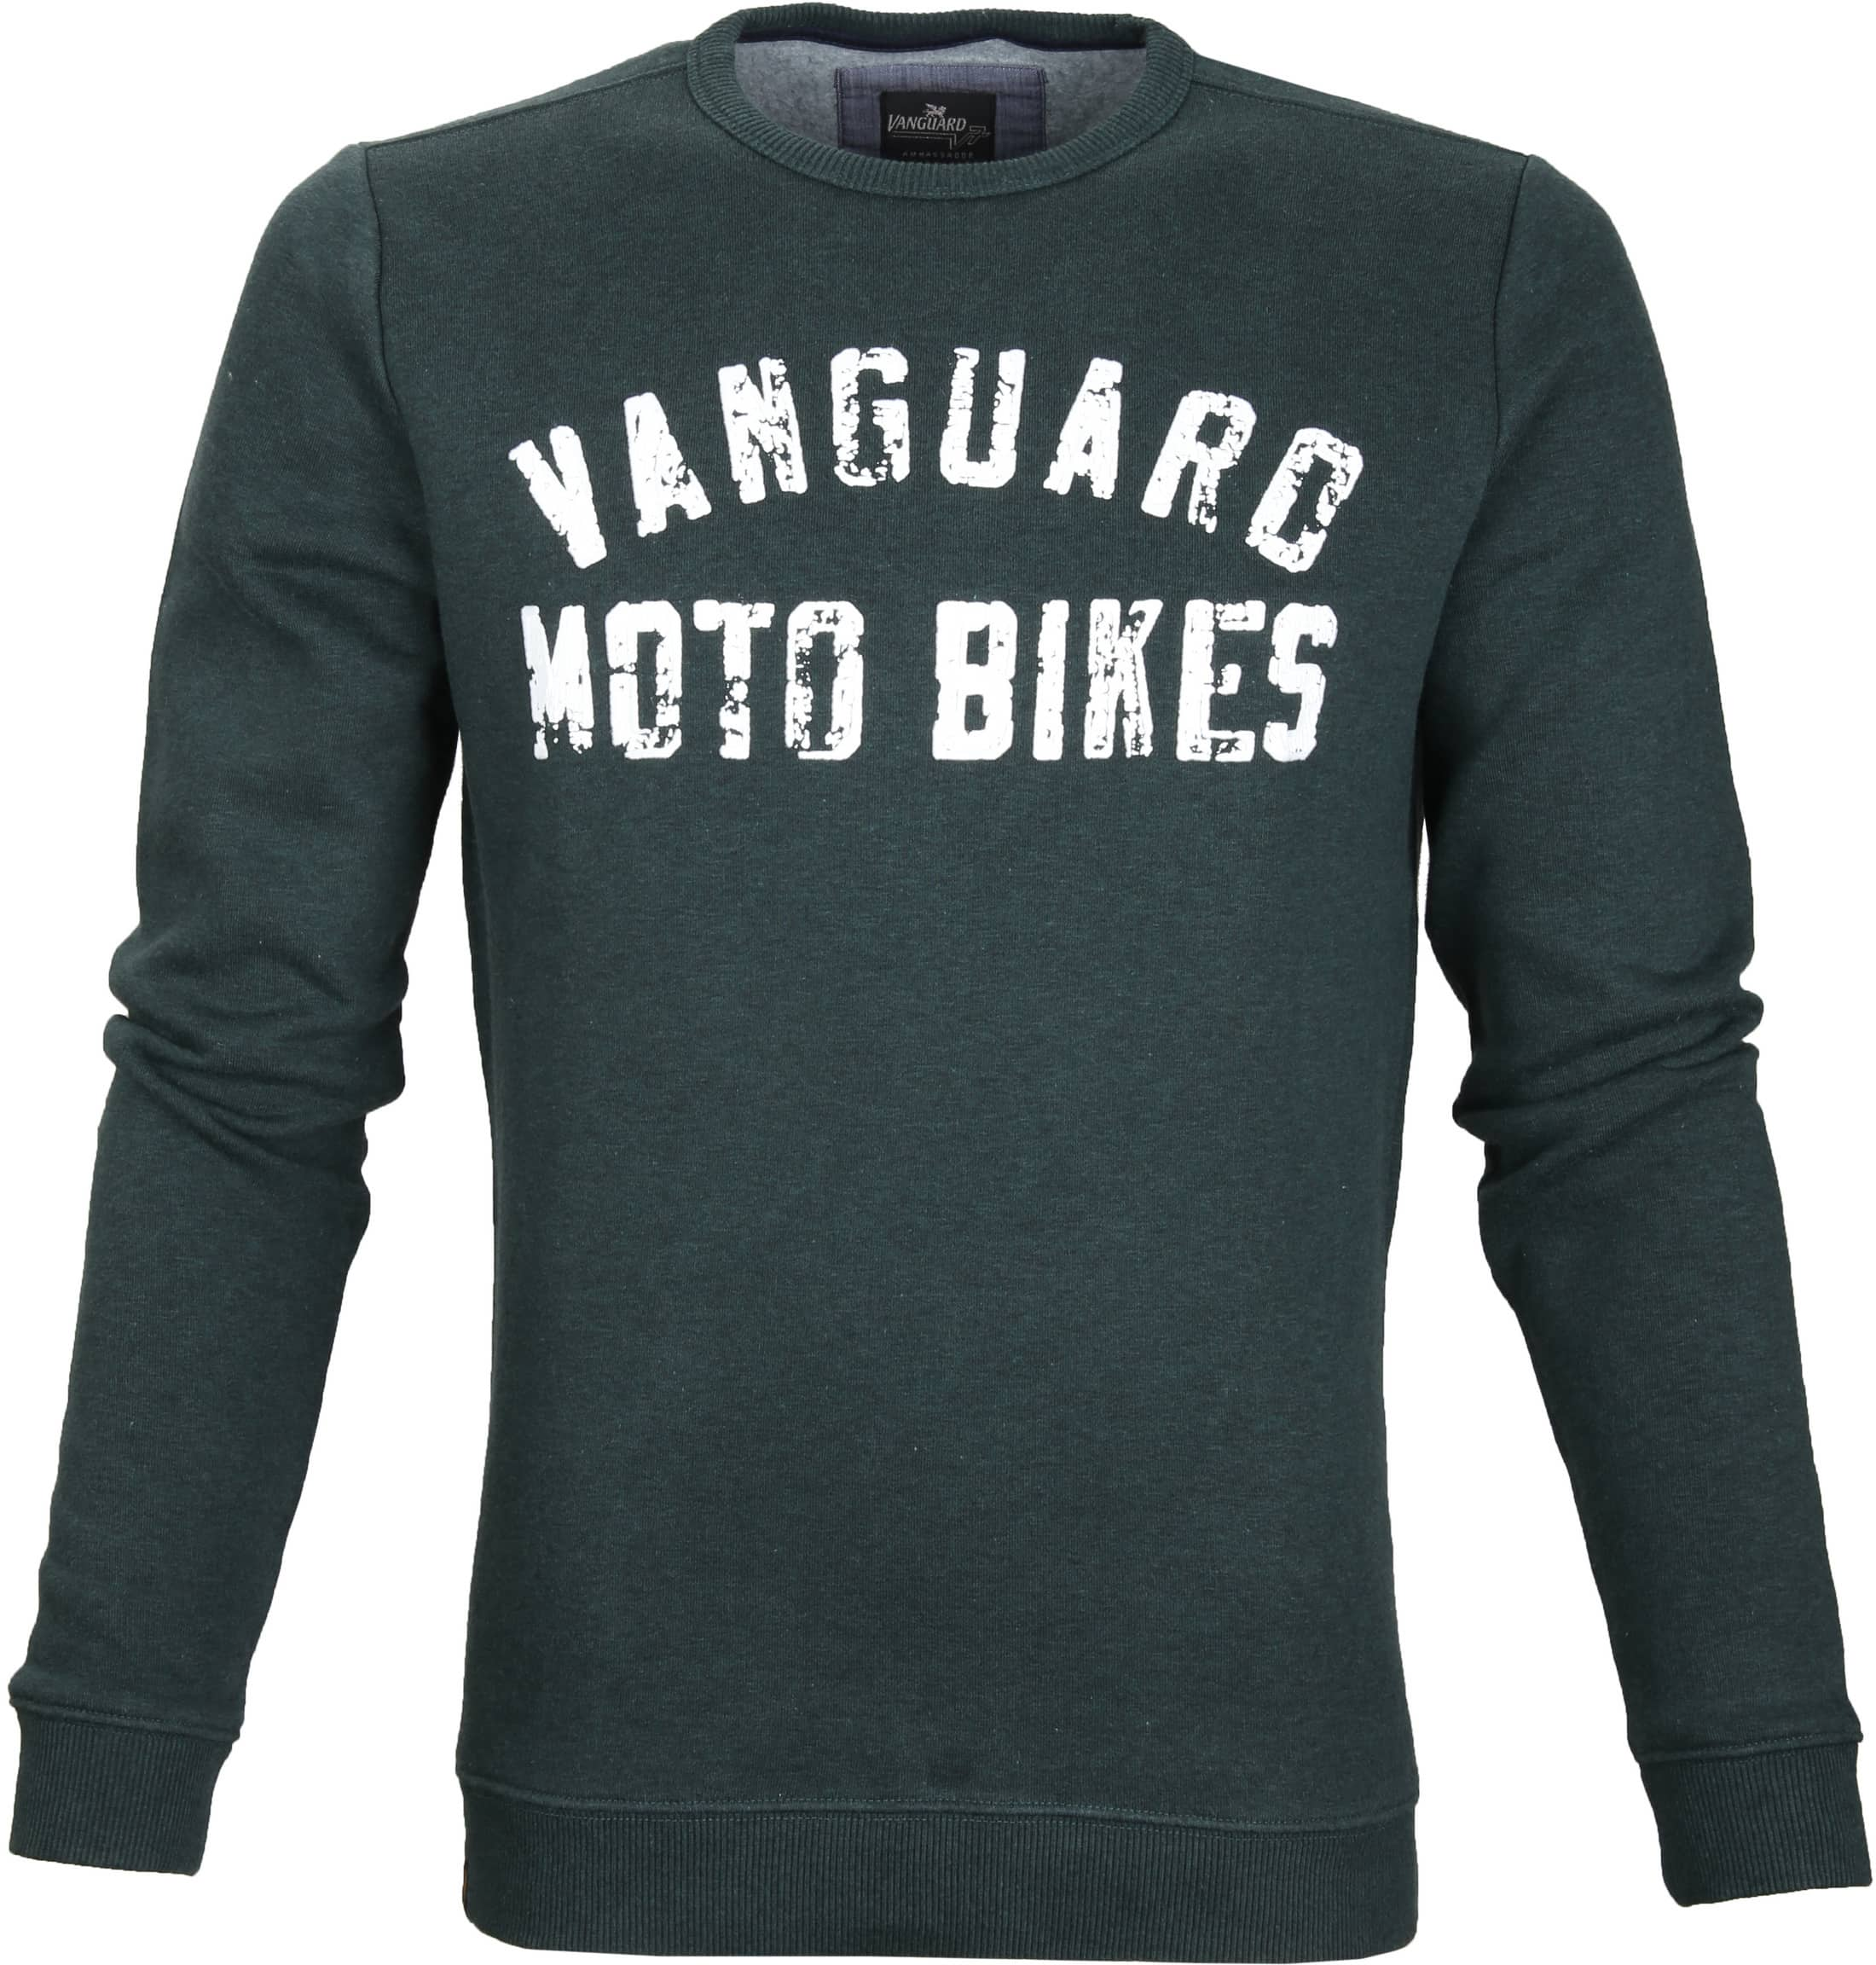 Vanguard Sweater Dark Green foto 0